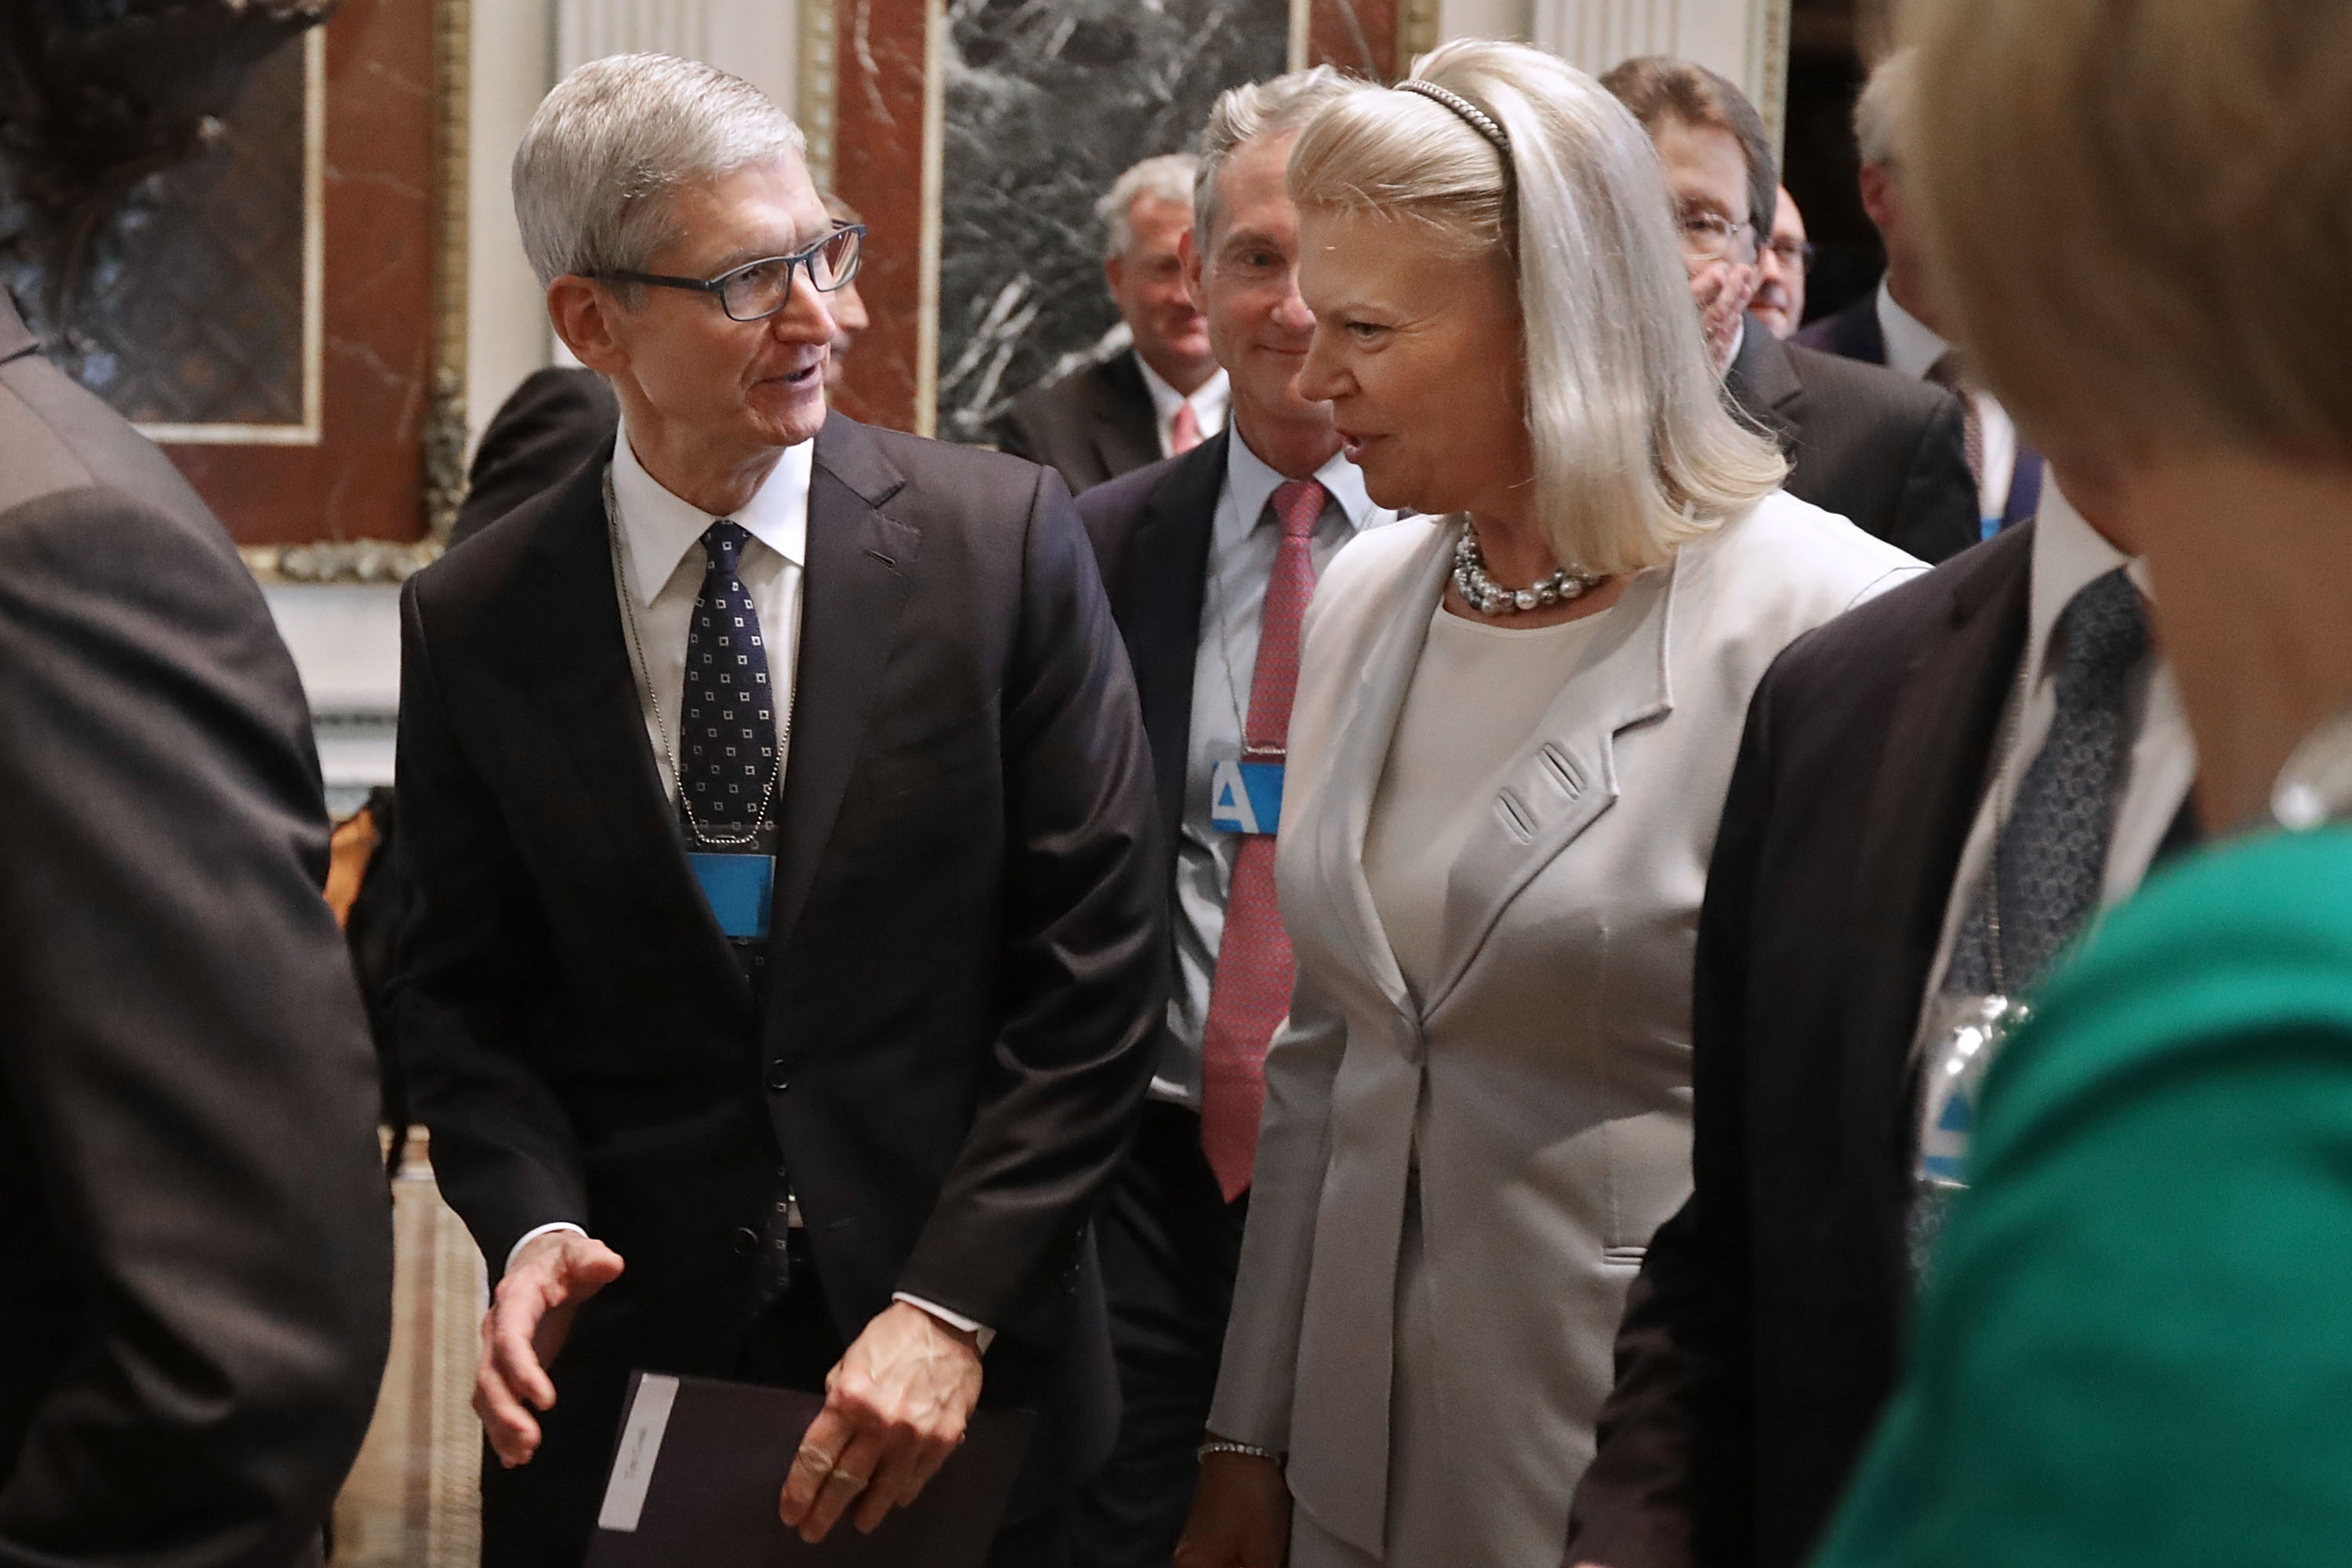 WASHINGTON, DC - JUNE 19: Apple CEO Tim Cook (L) and IBM CEO Ginni Rometty attend the inaugural meeting of the American Technology Council in the Indian Treaty Room at the Eisenhower Executive Office Building next door to the White House June 19, 2017. (Chip Somodevilla/Getty Images)